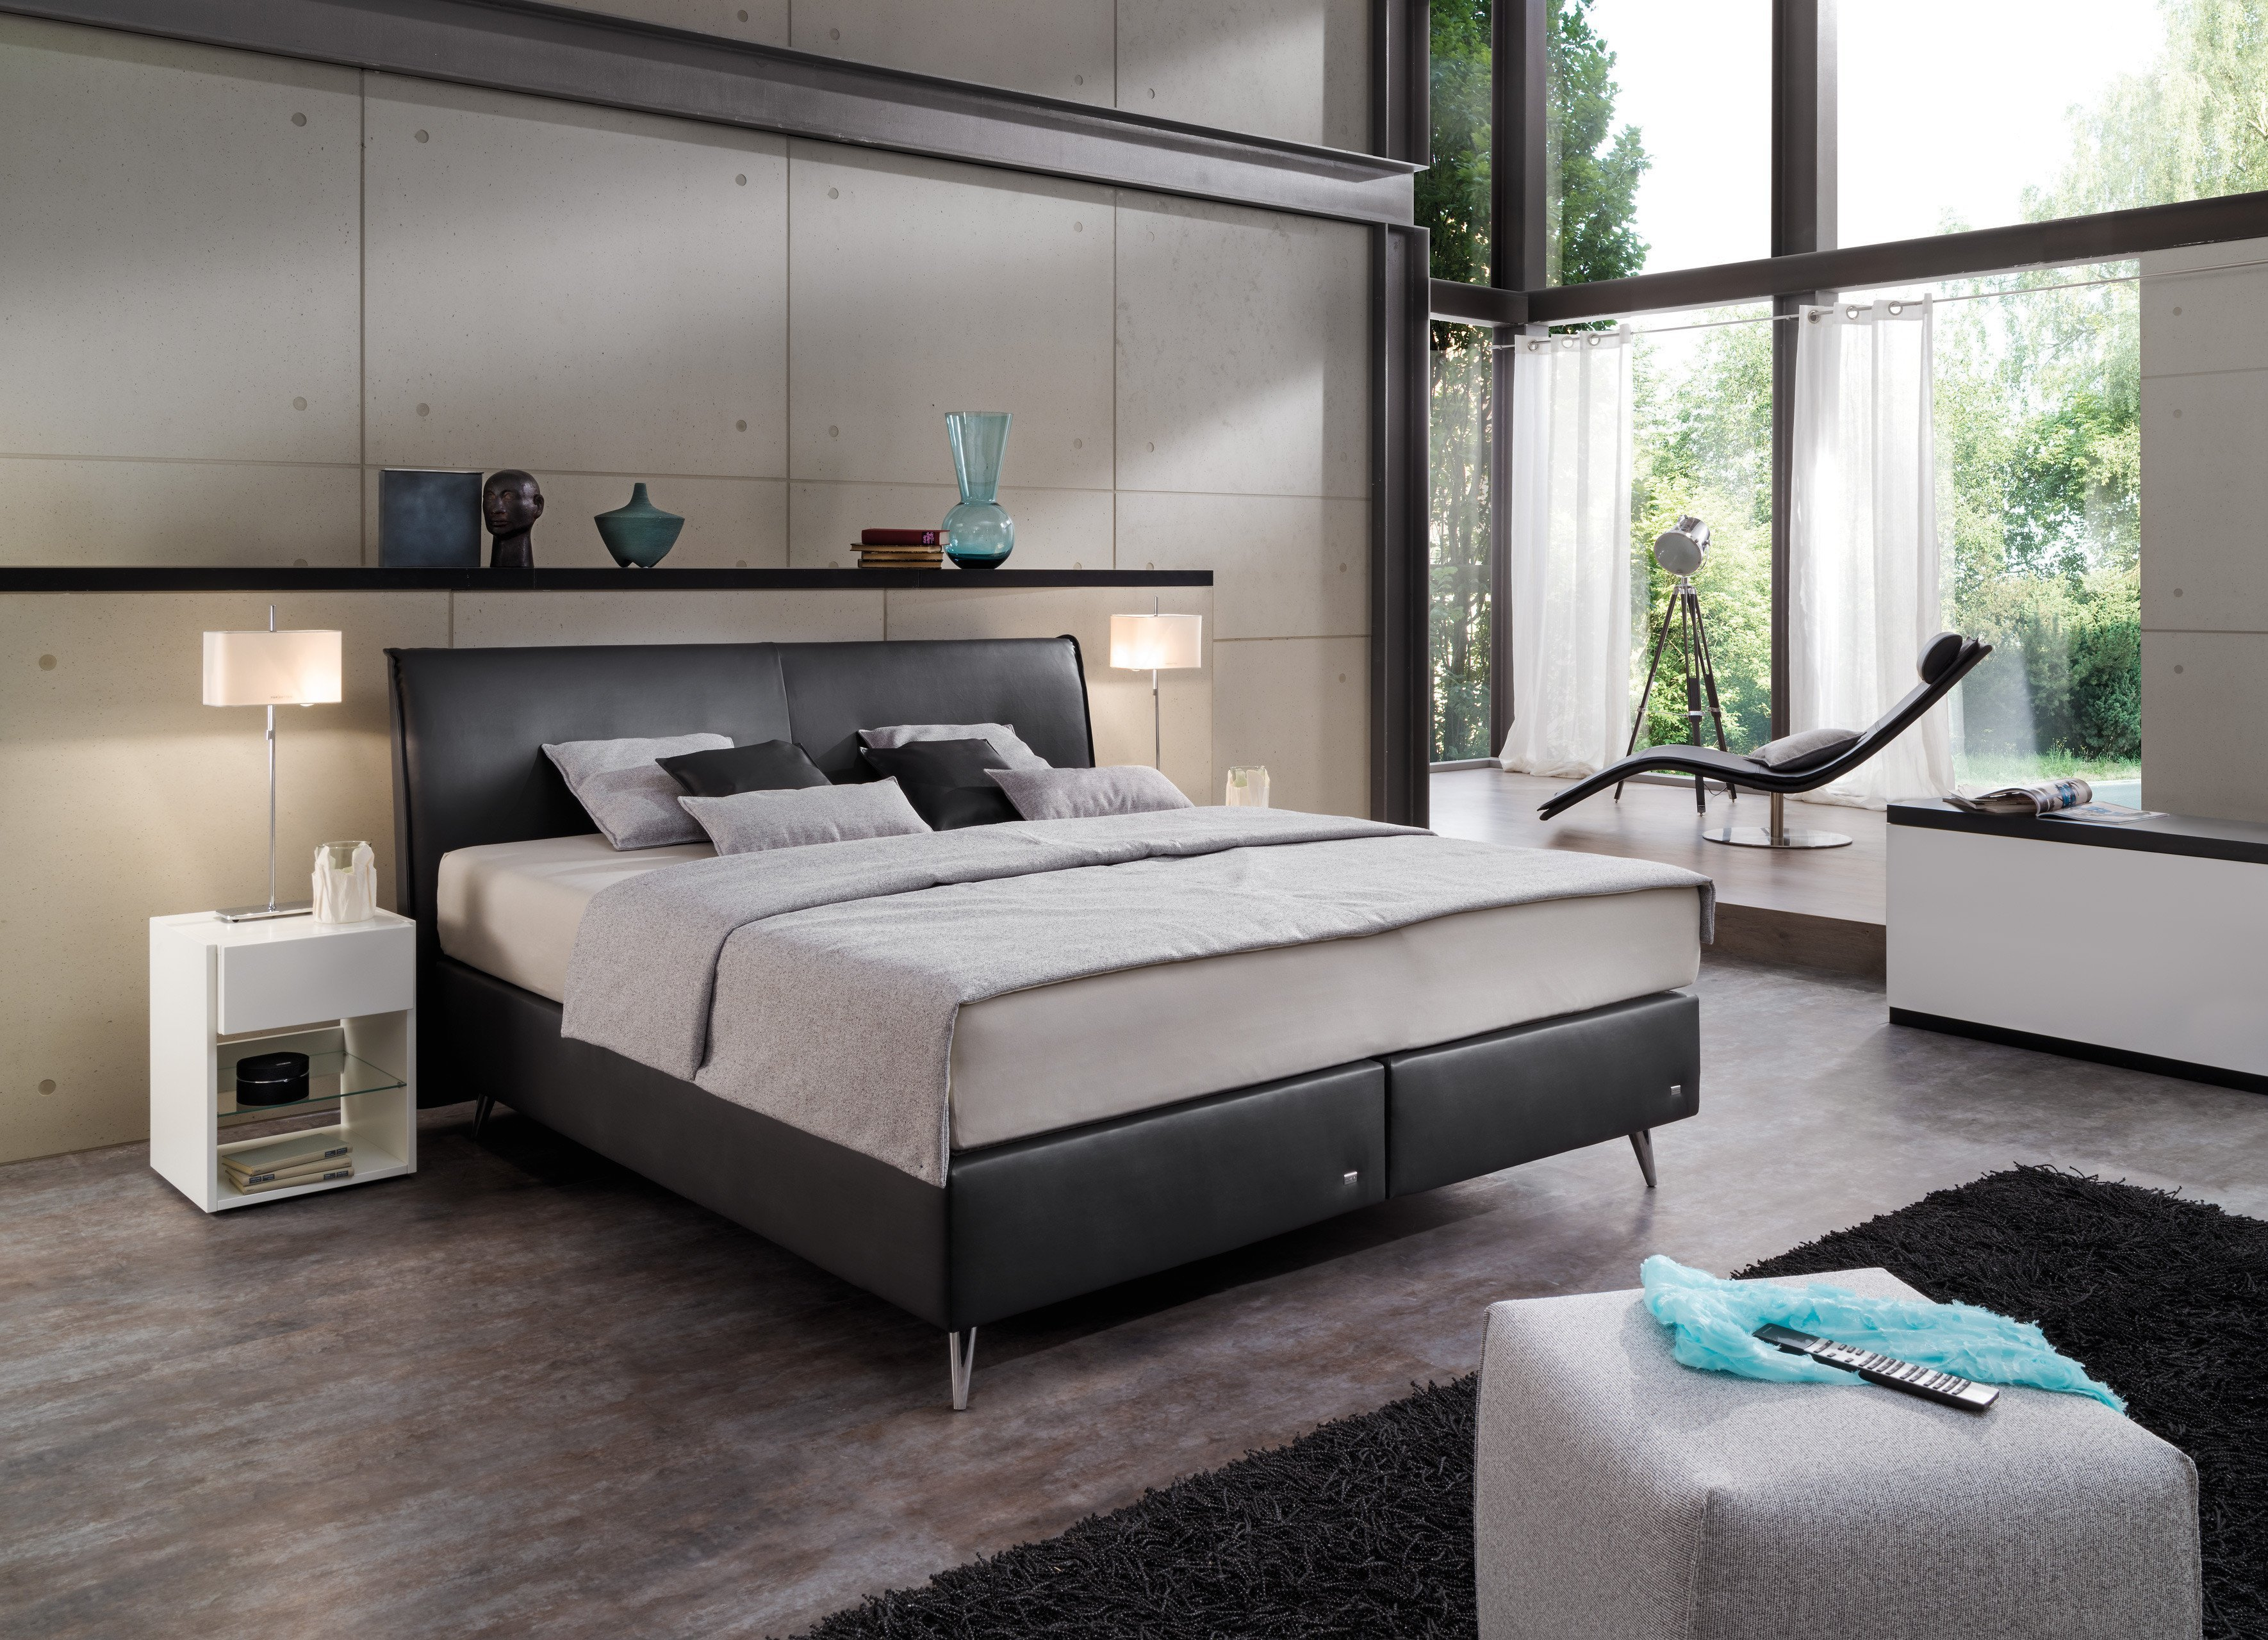 ruf amado boxspringbett in anthrazit mit chromfarbigen. Black Bedroom Furniture Sets. Home Design Ideas